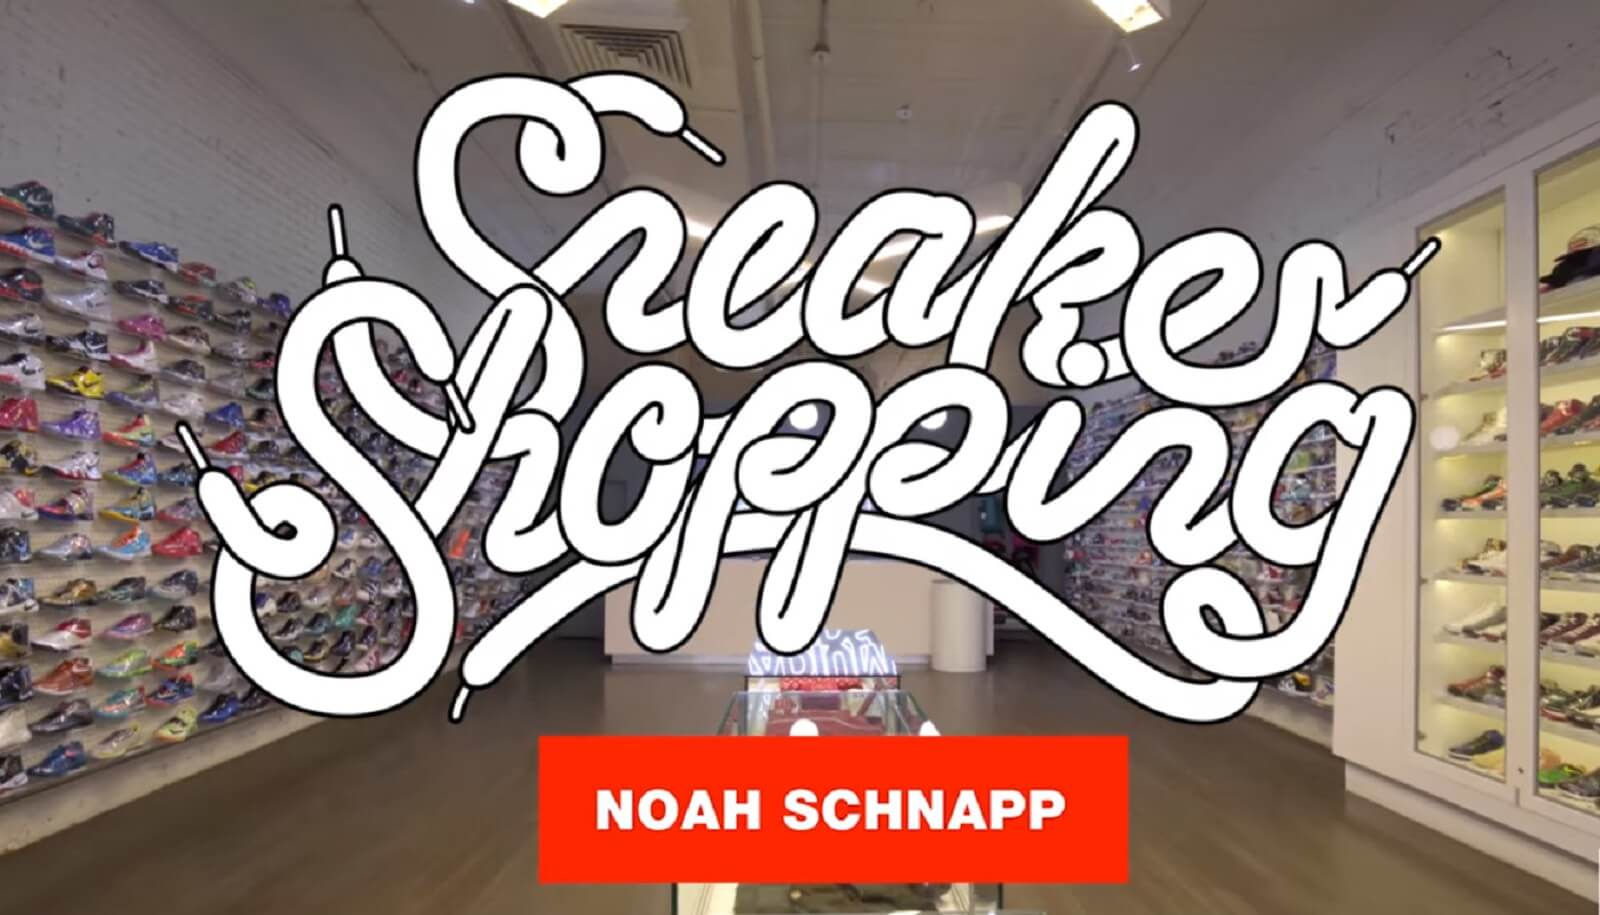 Stranger Things en Shooping Sneakers de Complex